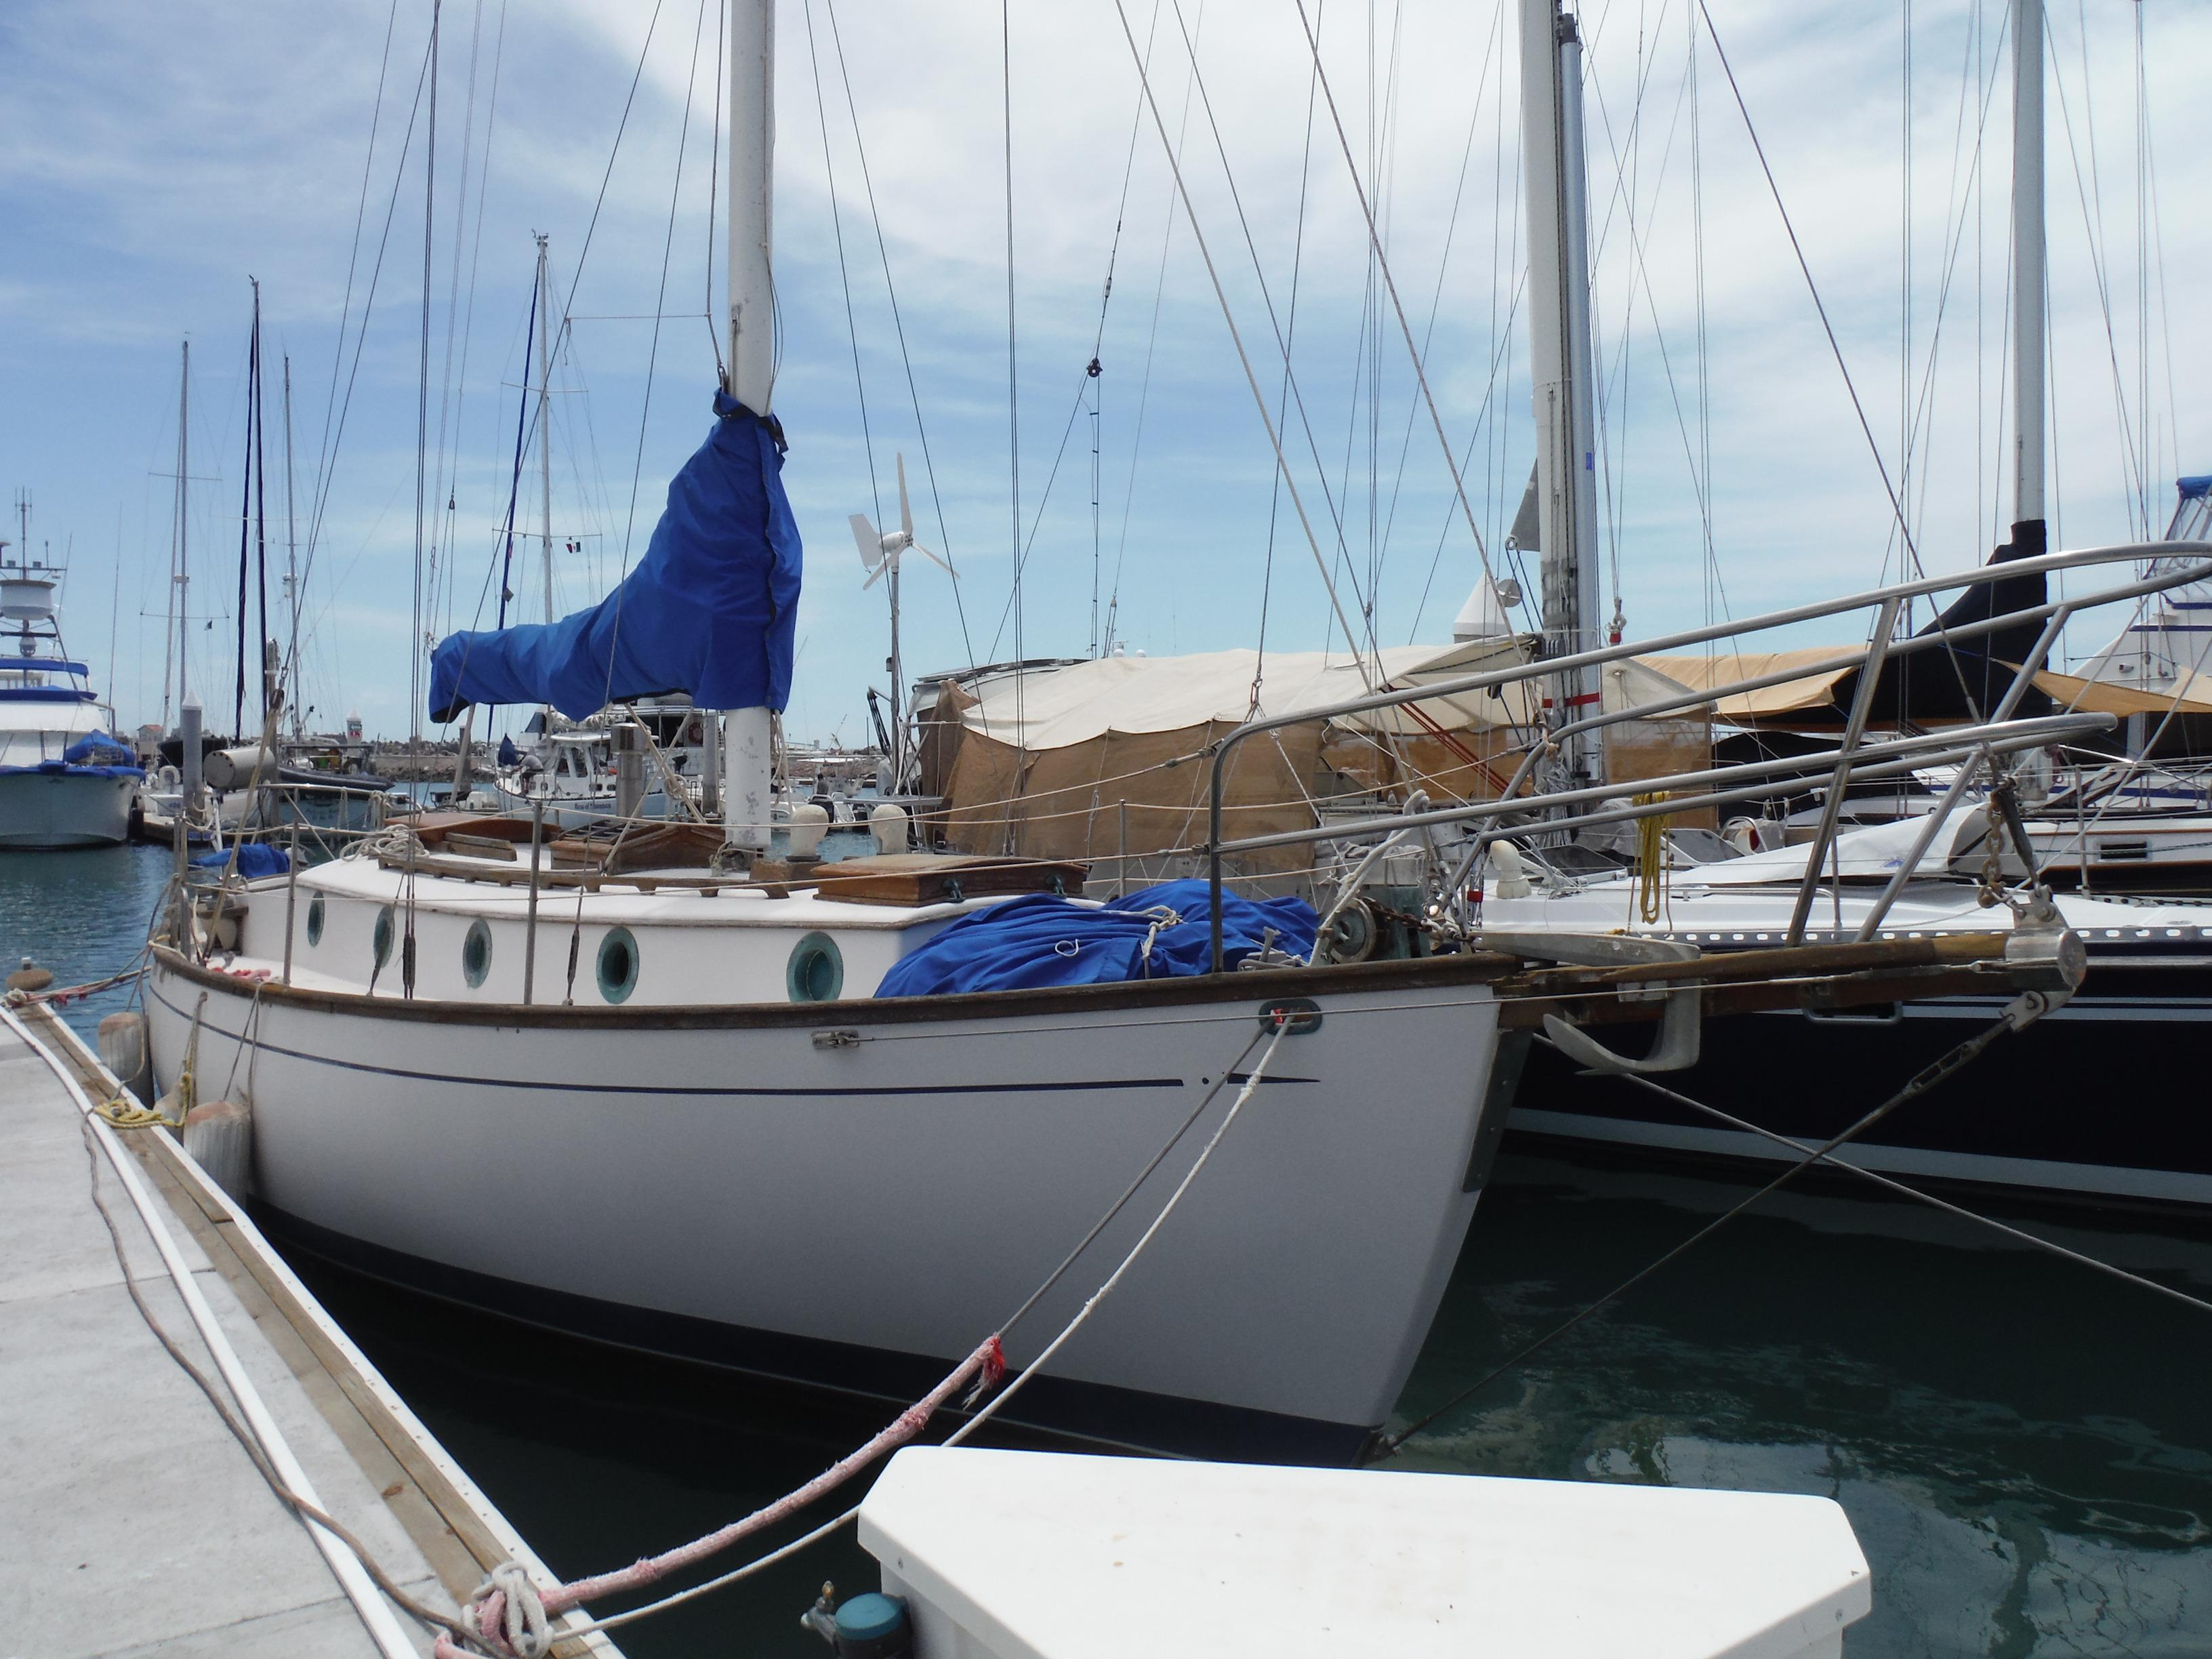 34' Noon Ocean 34 Cutter+Boat for sale!